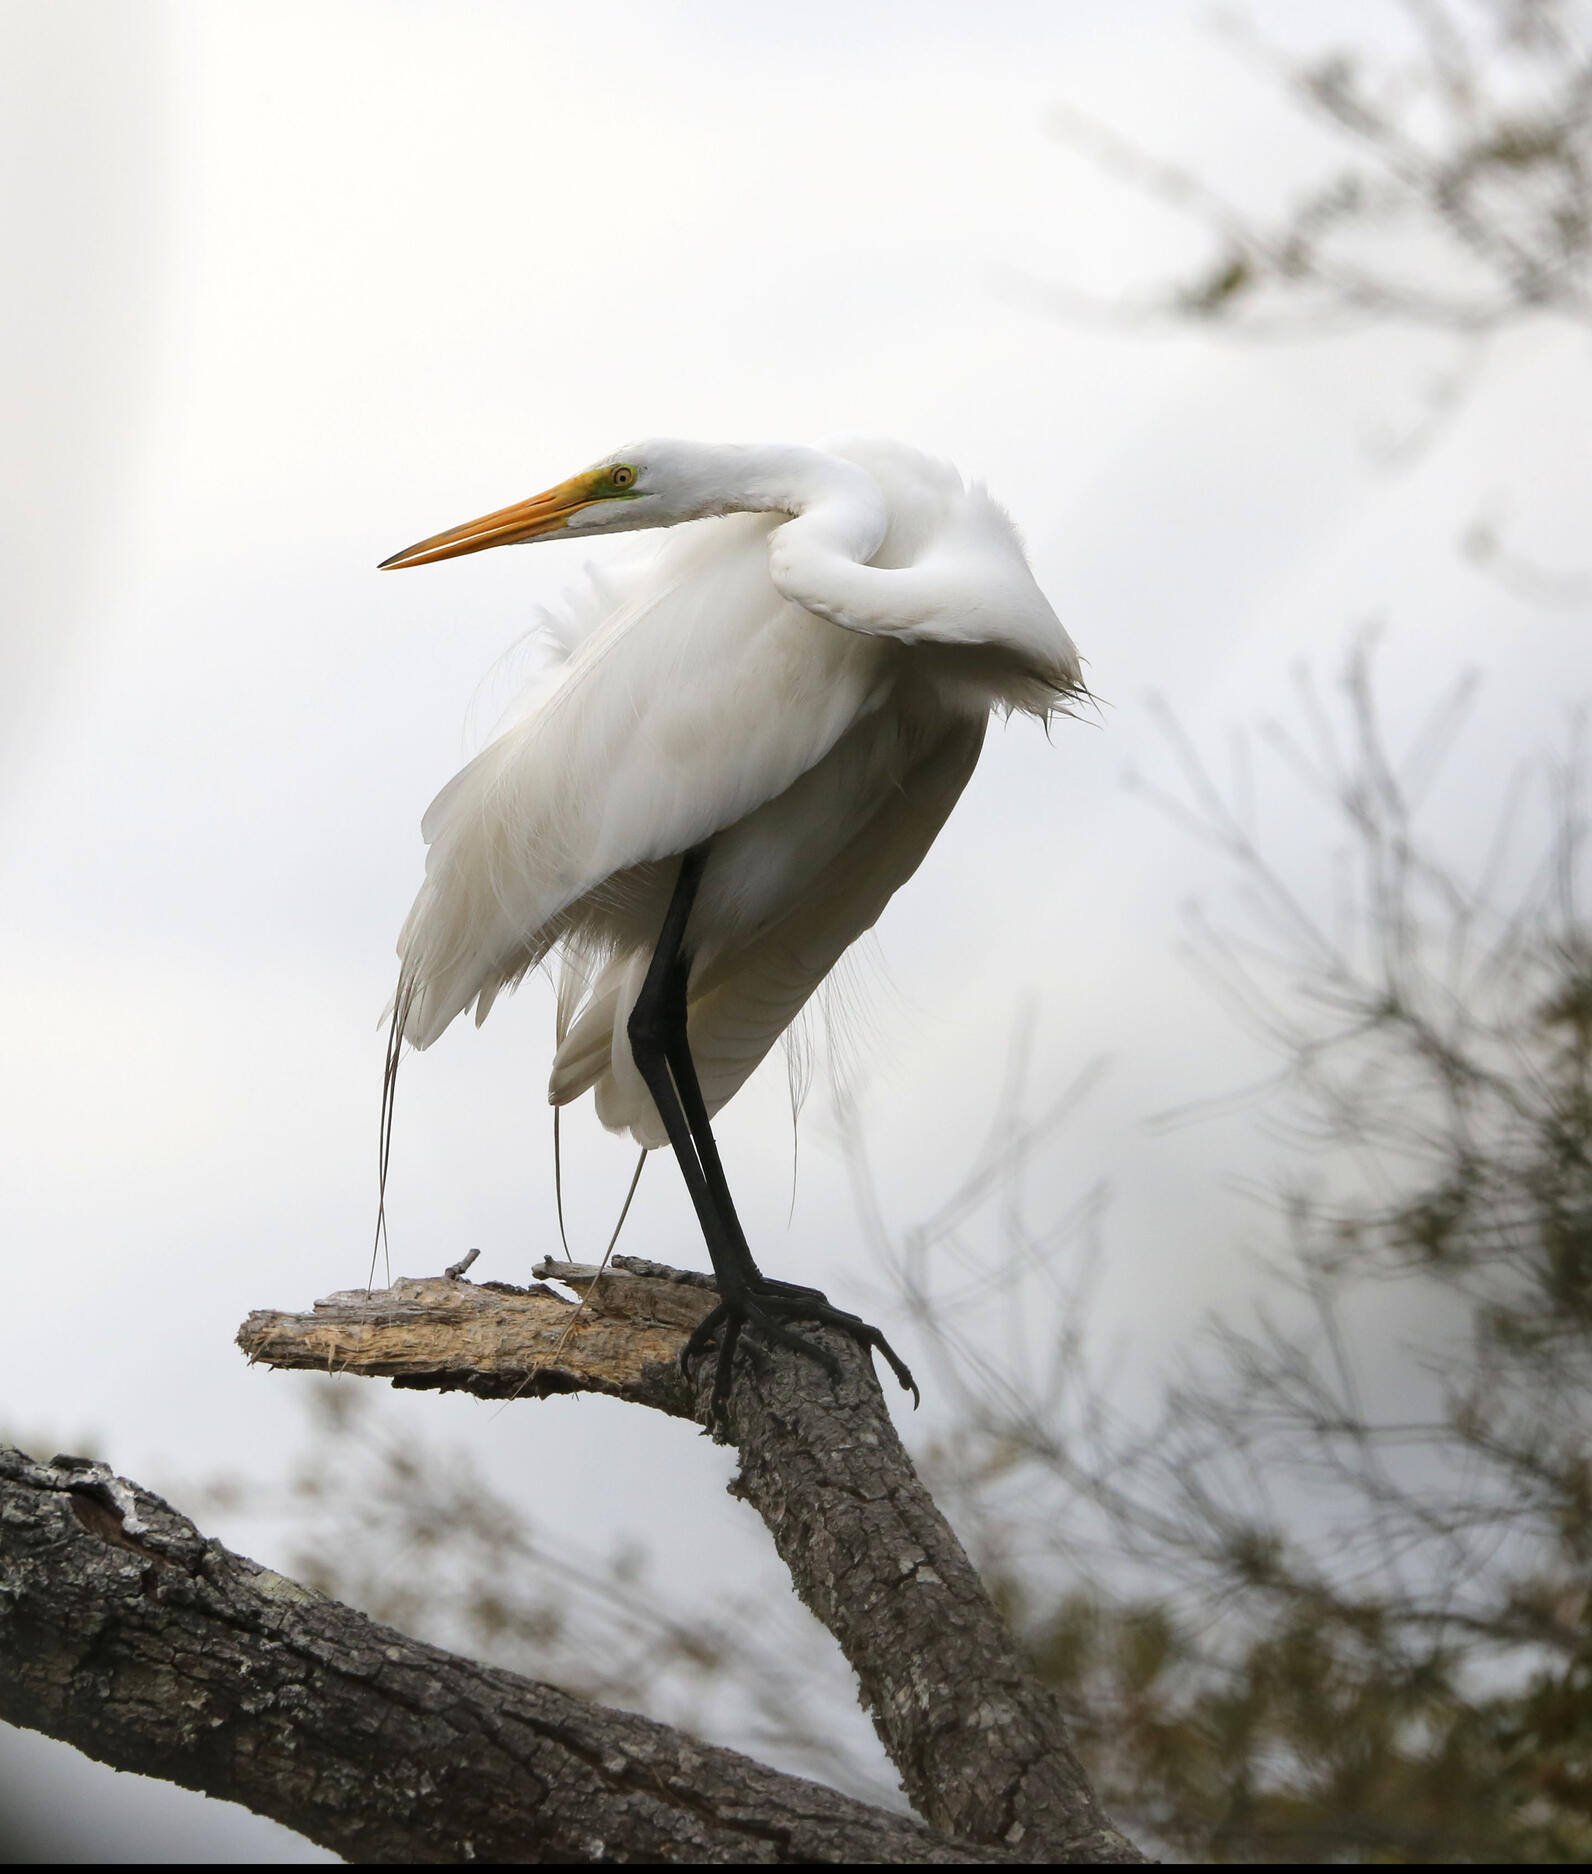 Great Egret, brilliantly white, perched on a dead thick snag